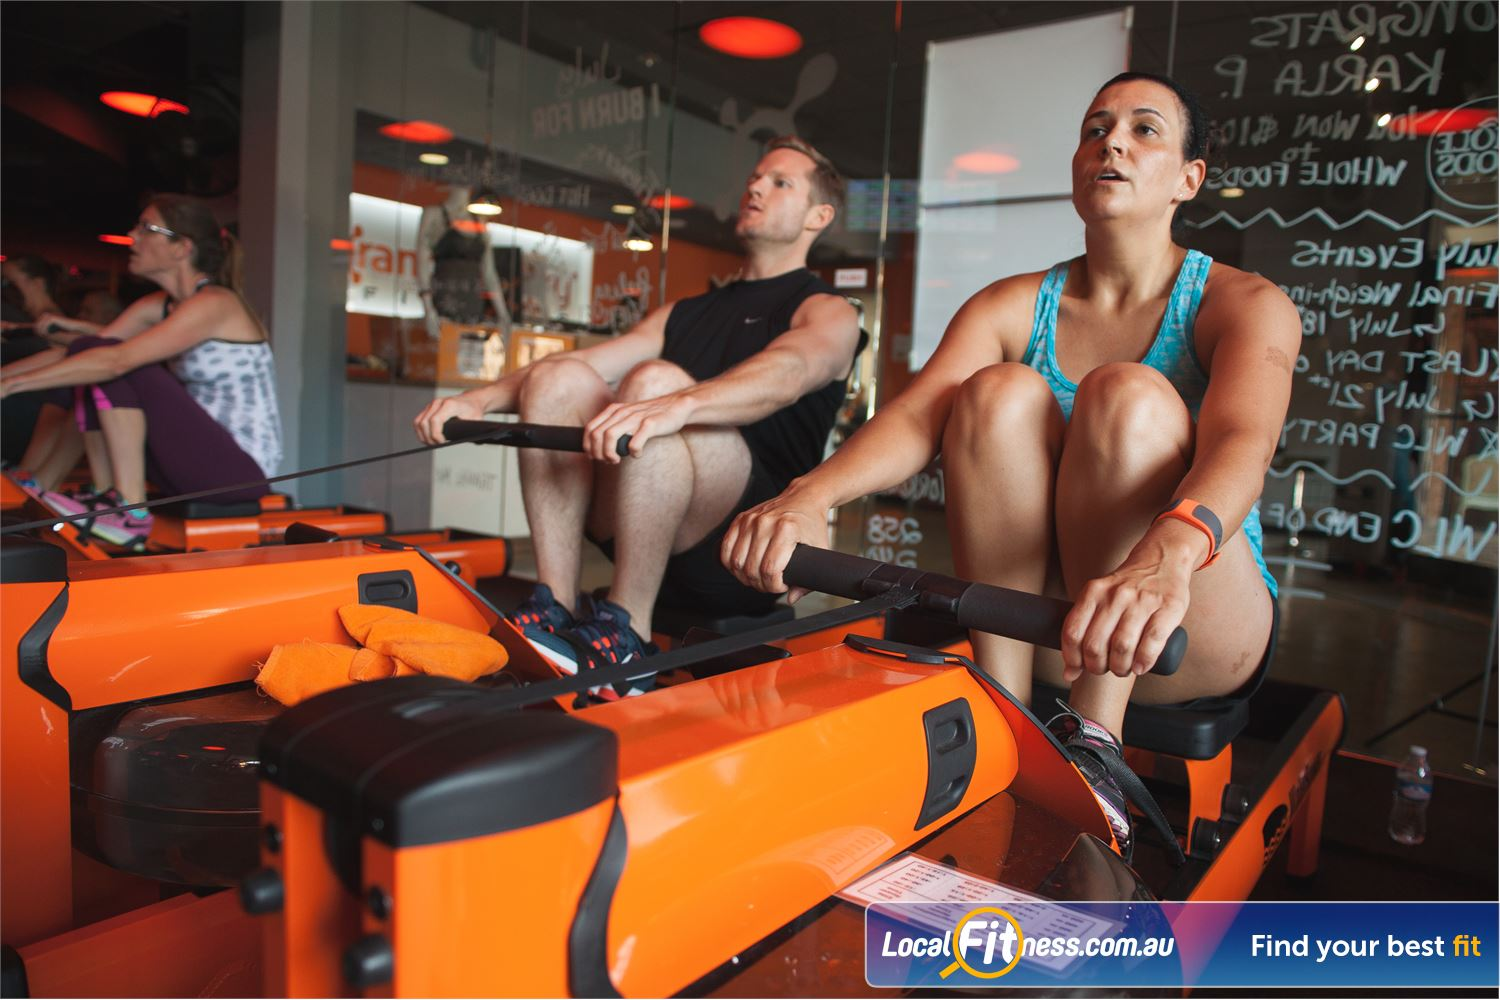 Orangetheory Fitness Near Toorak Working out in a group at Orangetheory Hawthorn creates energy you can't get alone.